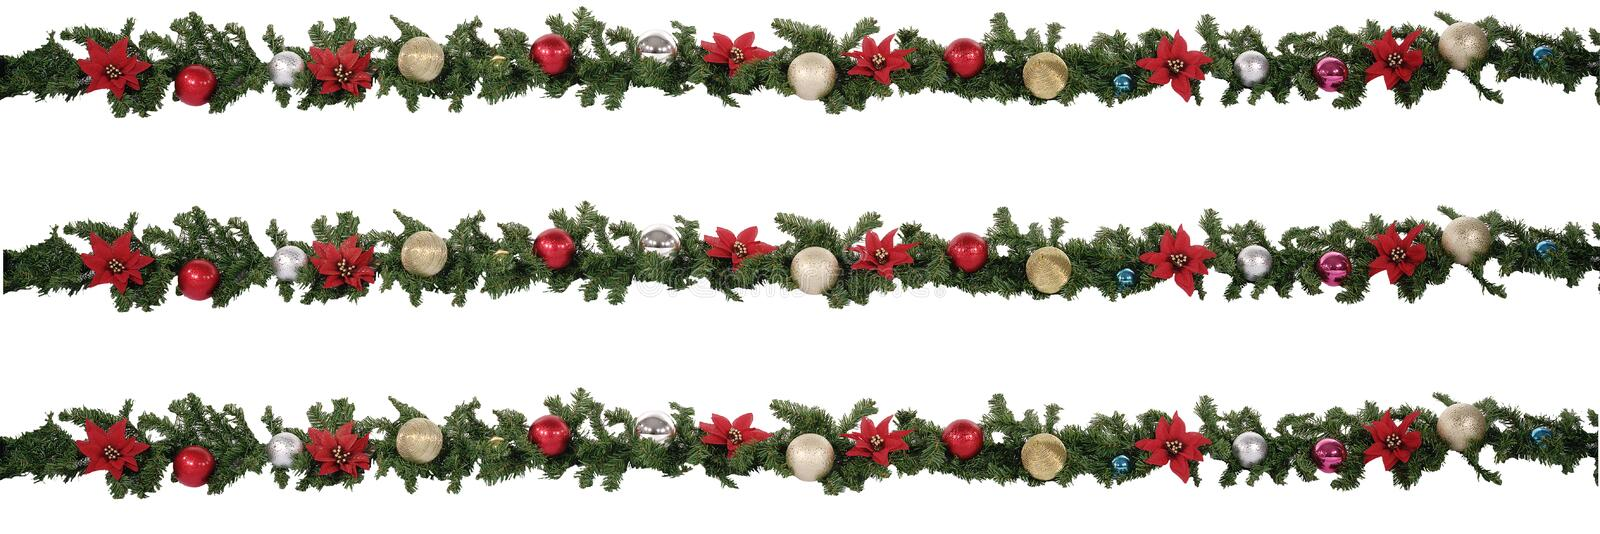 Download Christmas garland stock photo. Image of decoration, image - 14782870